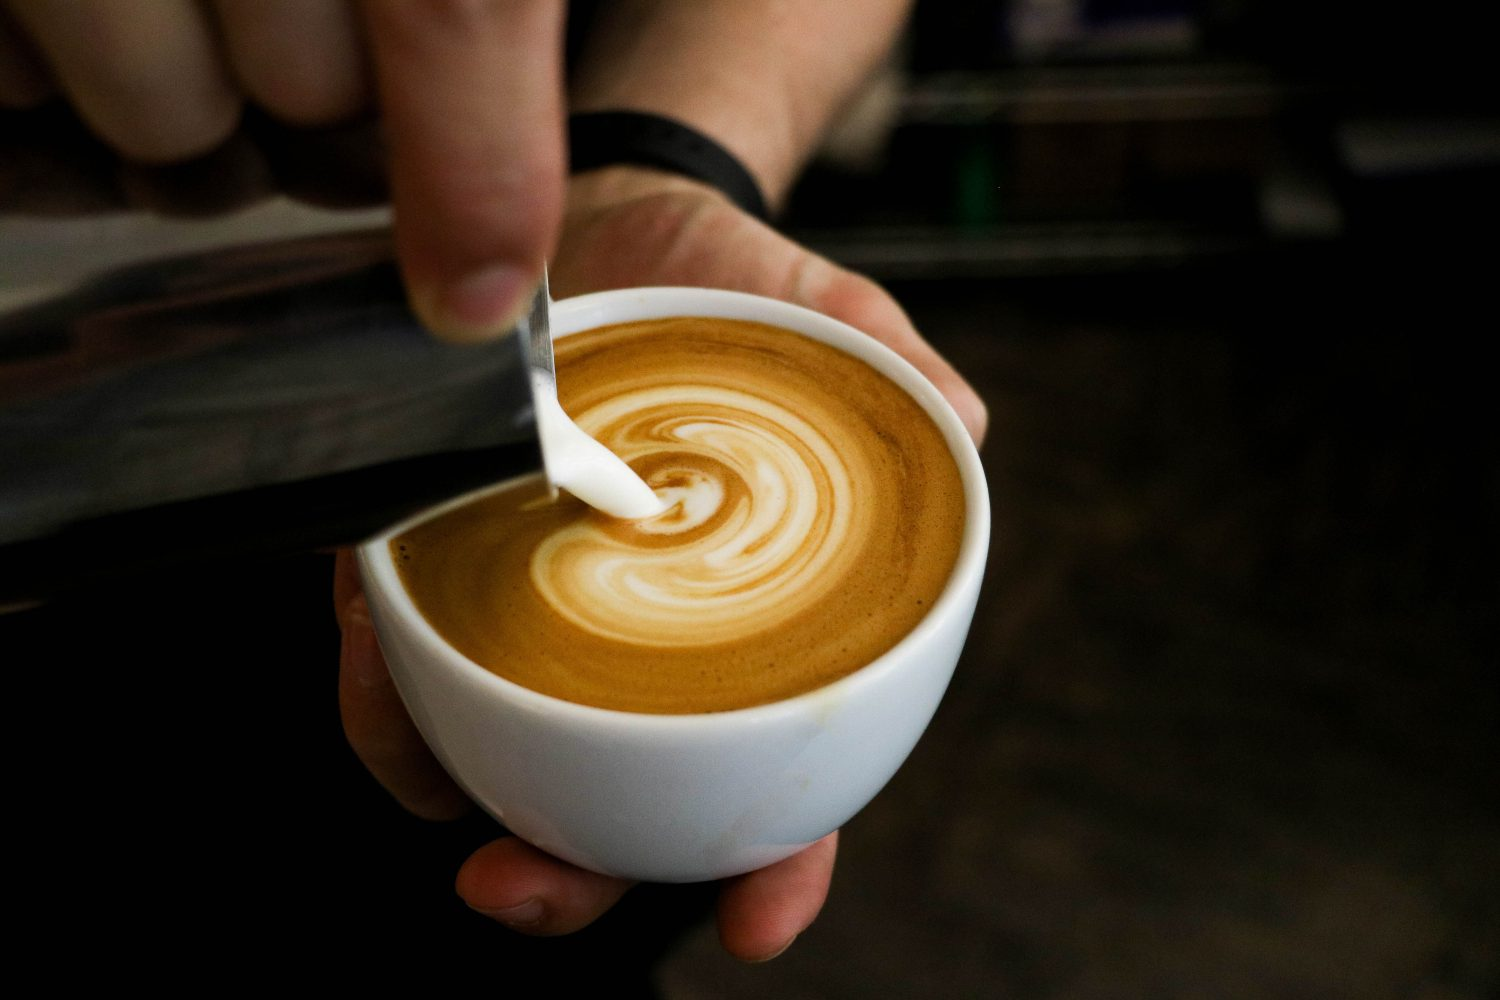 The Impact of Milk in Your Coffee / Espresso - The Good and the Bad